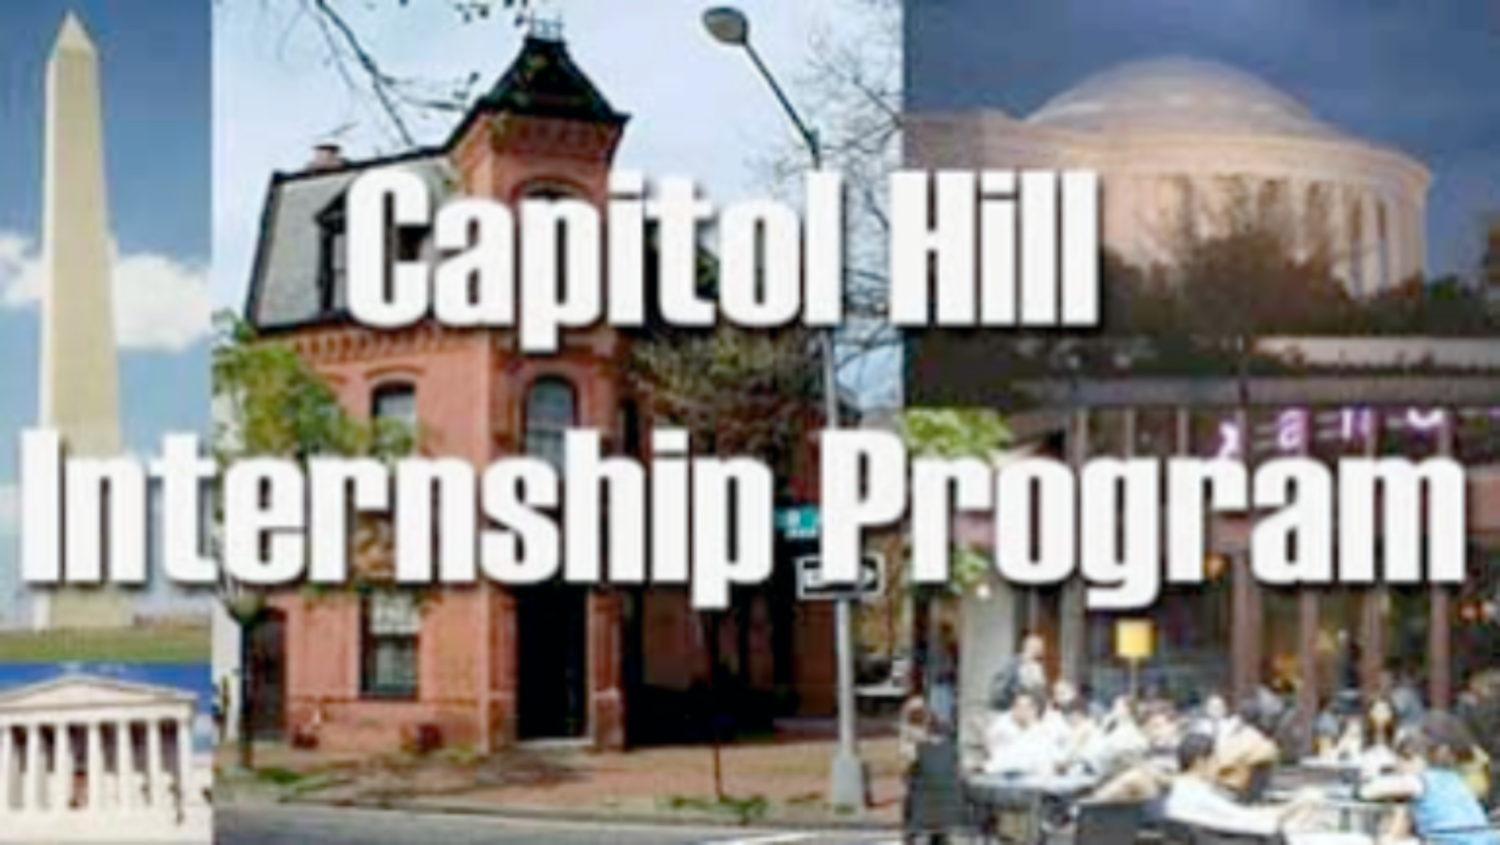 Capitol Hill Internship Program